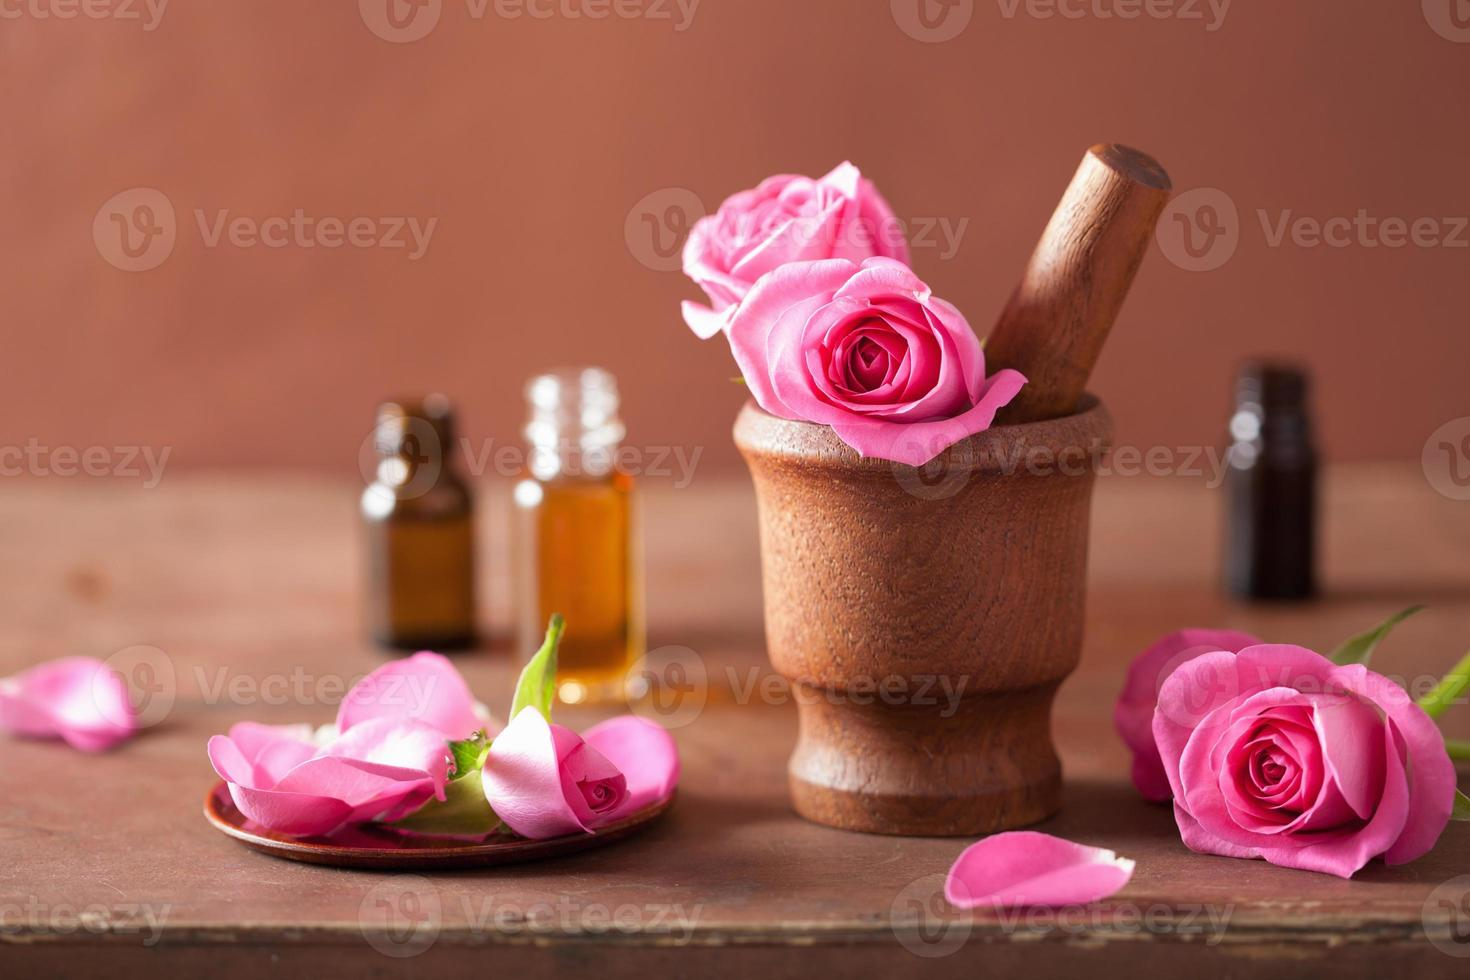 spa set with rose flowers mortar and essential oil photo